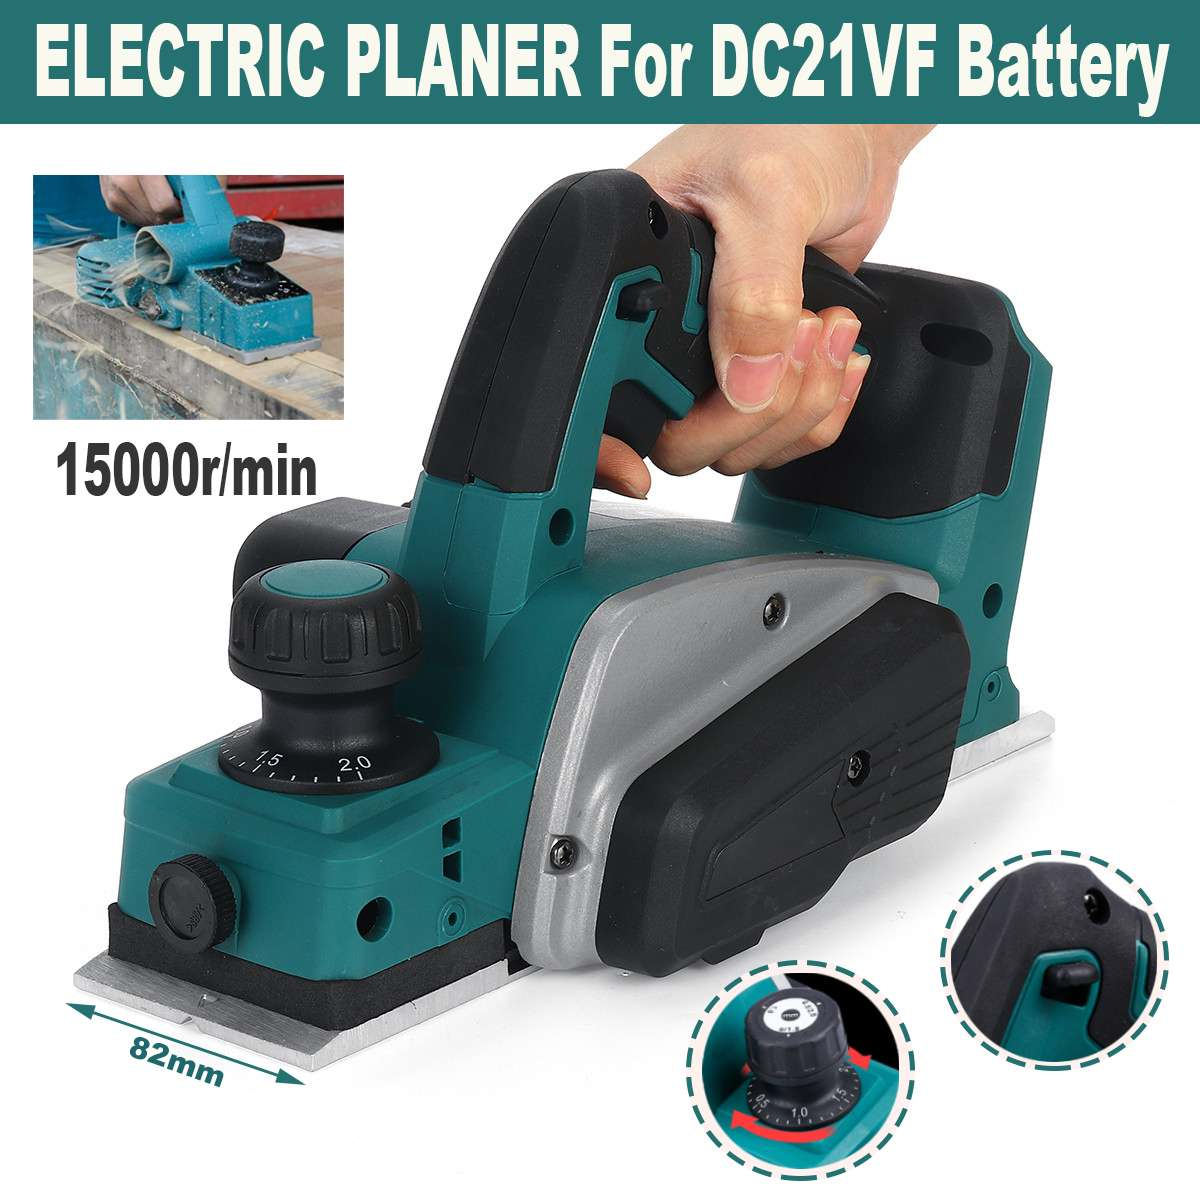 18V 15000rpm Rechargeable Electric Planer Cordless Handheld for Makita 18V Battery Wood Cutting Tool with Wrench Drillpro Tool